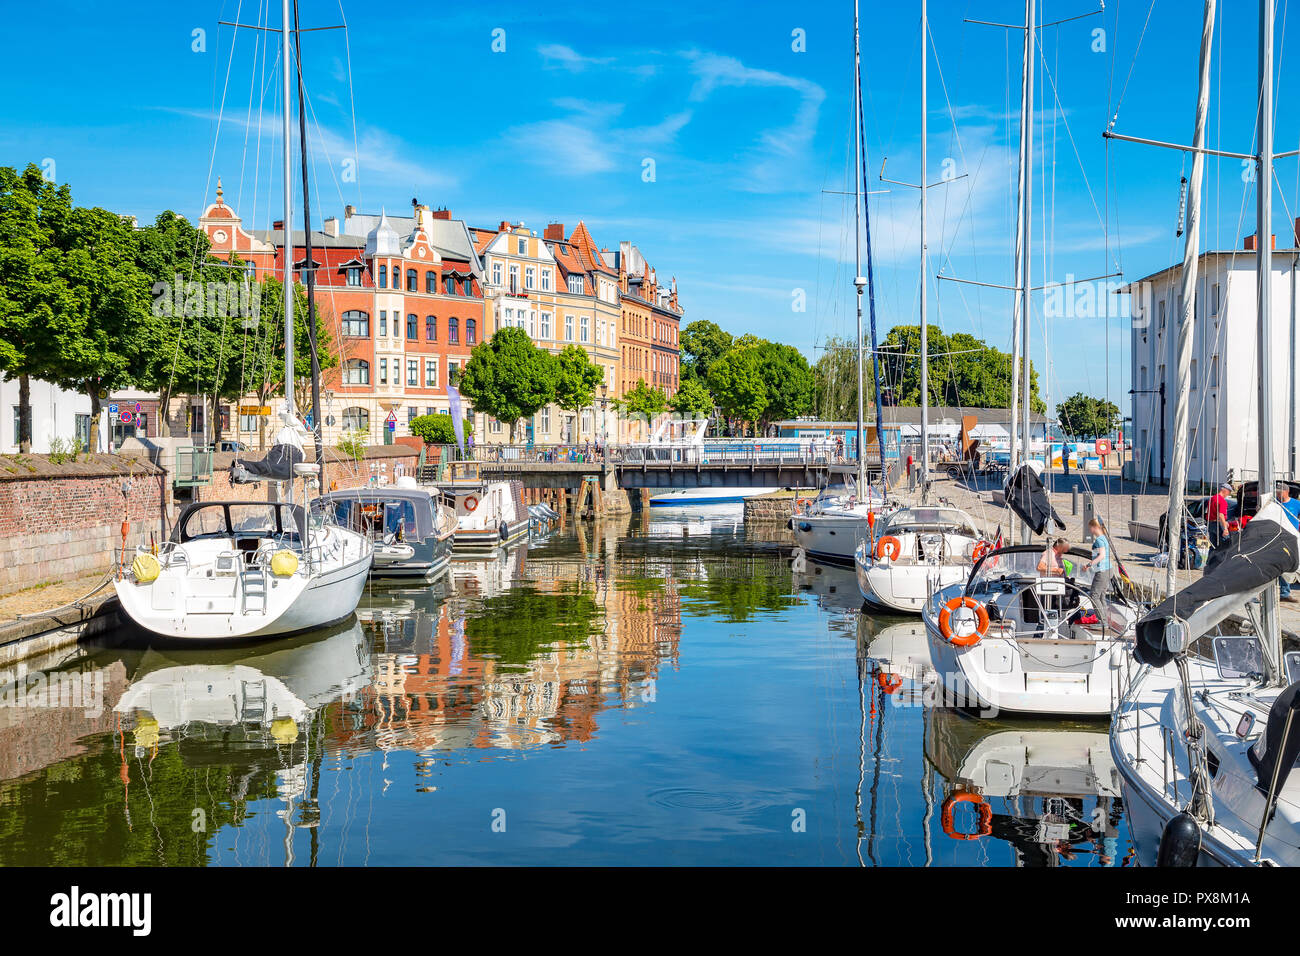 Classic panoramic view of the hanseatic city of Stralsund with sailing boats in summer, Mecklenburg-Vorpommern, Germany - Stock Image